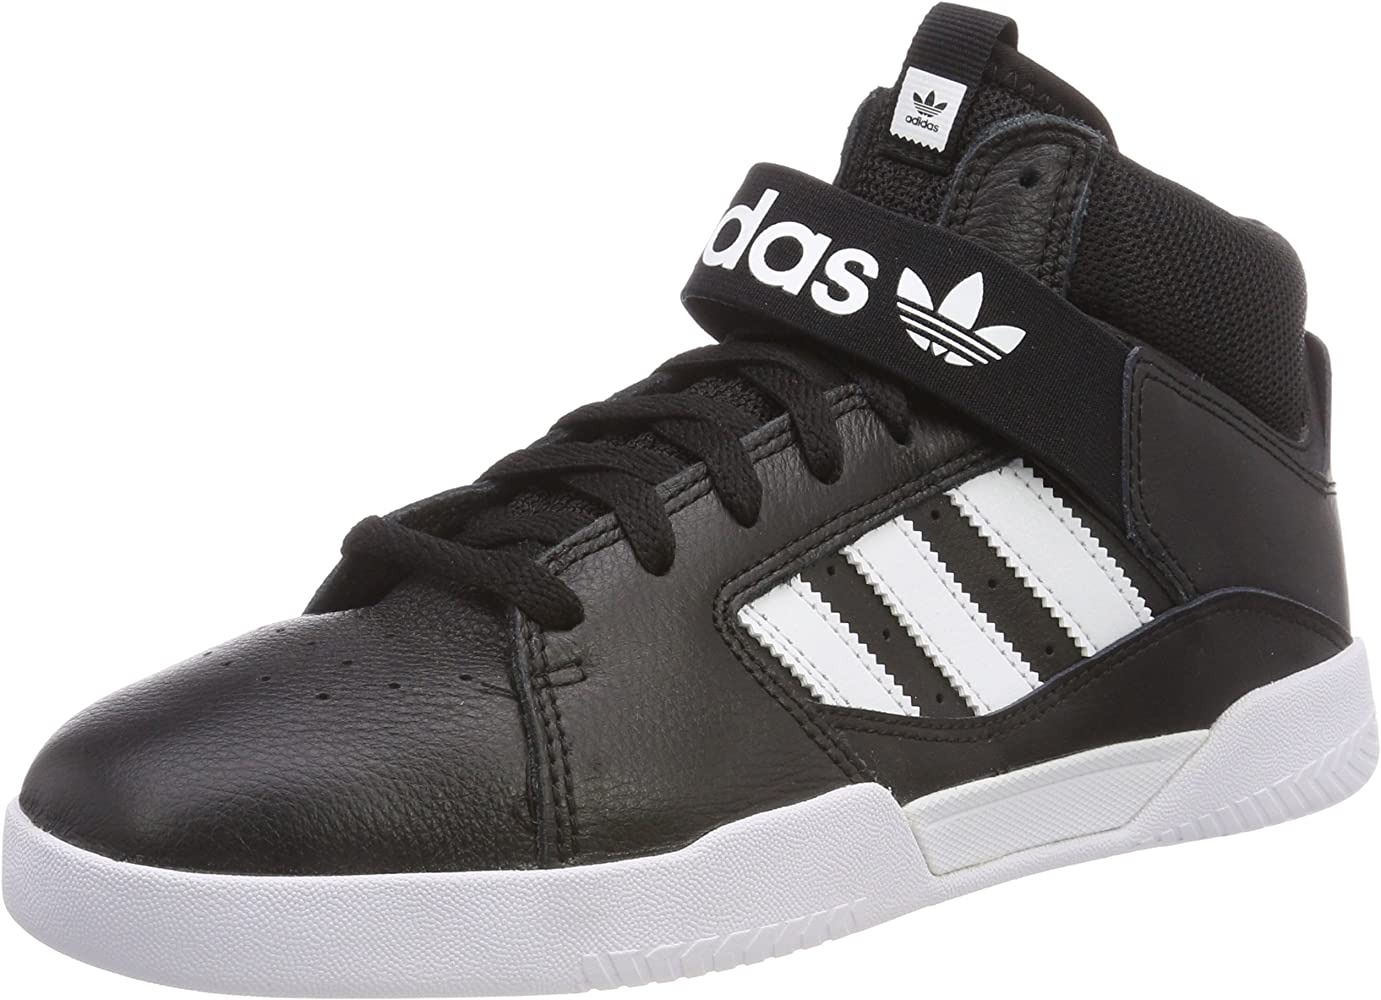 adidas VRX Cup Mid B41479 Mens Shoes